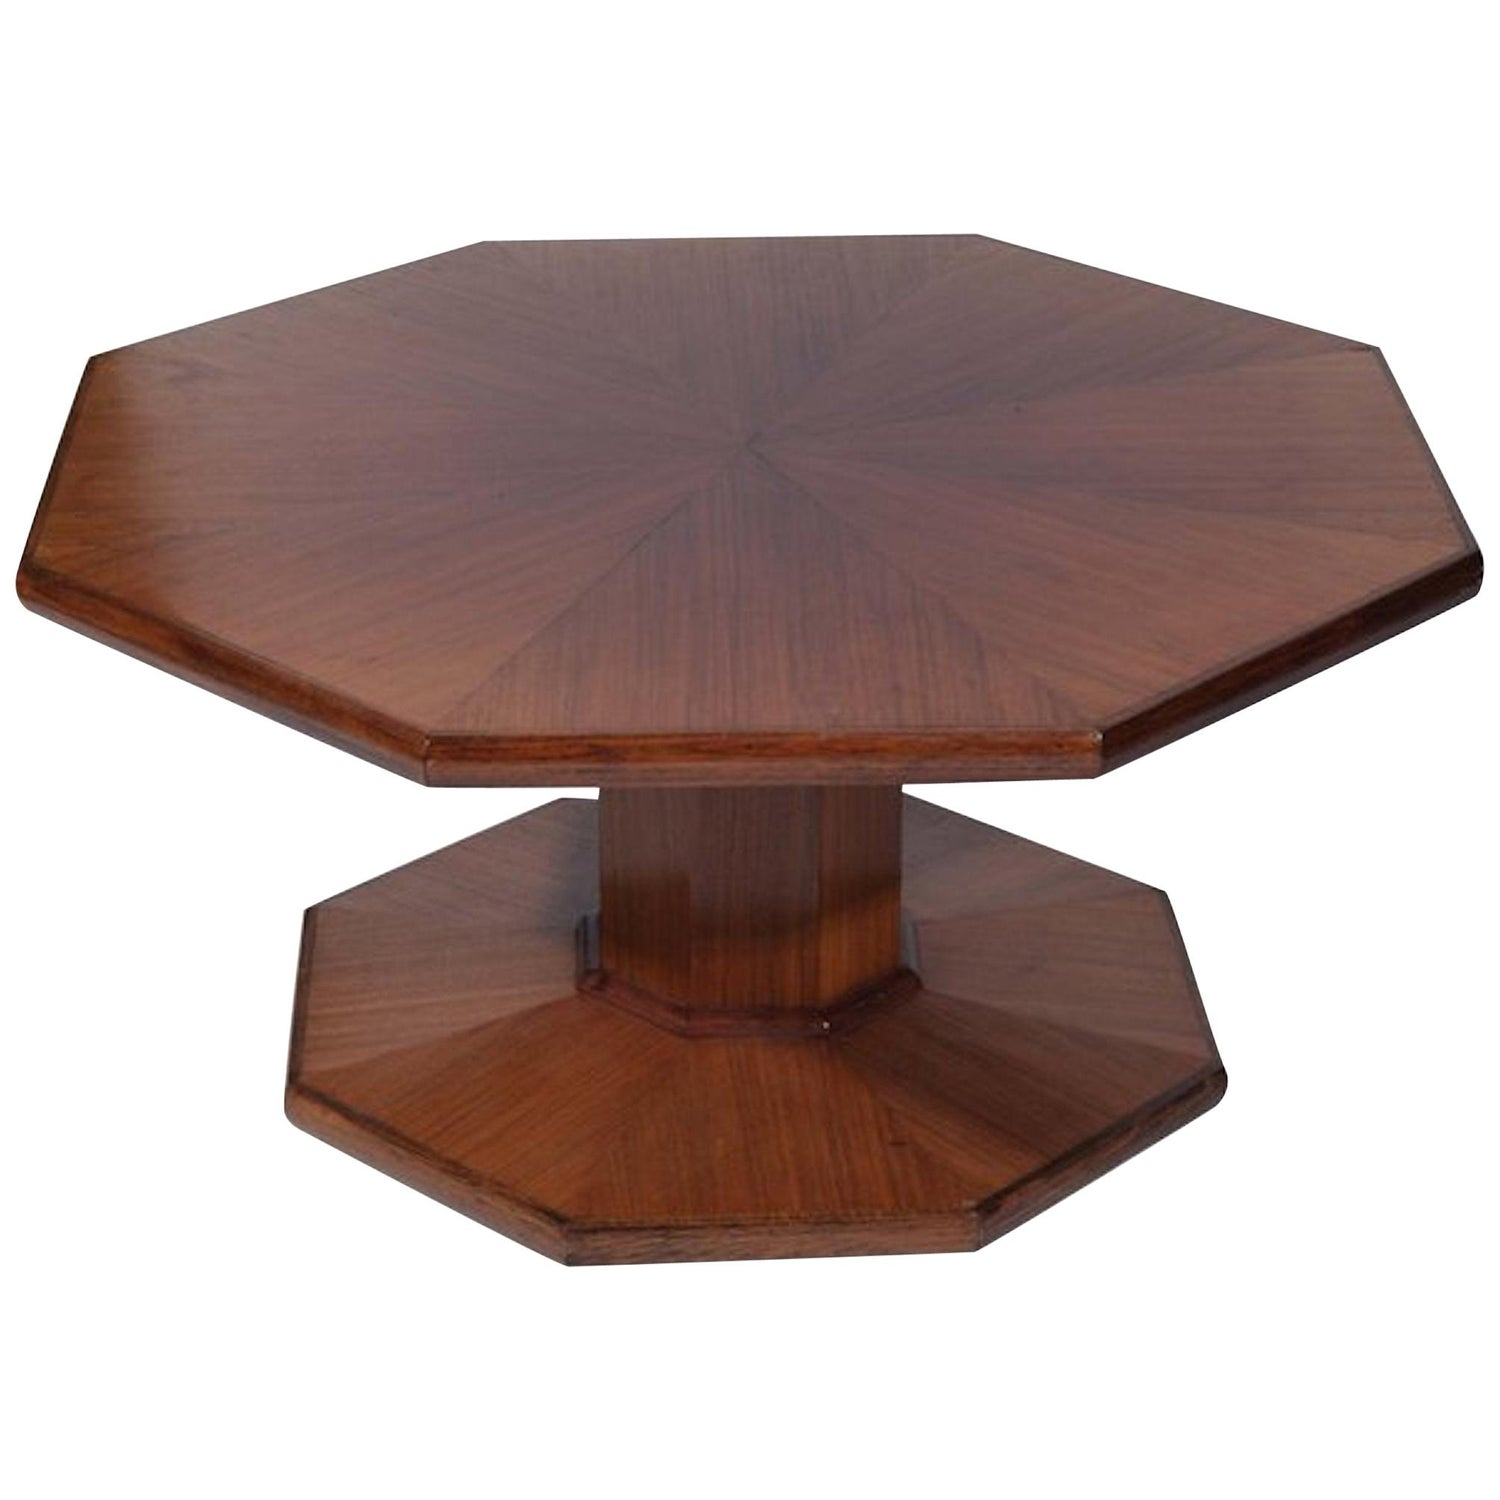 Table Sofa Coffee Low Octagonal Oak Arts & Crafts